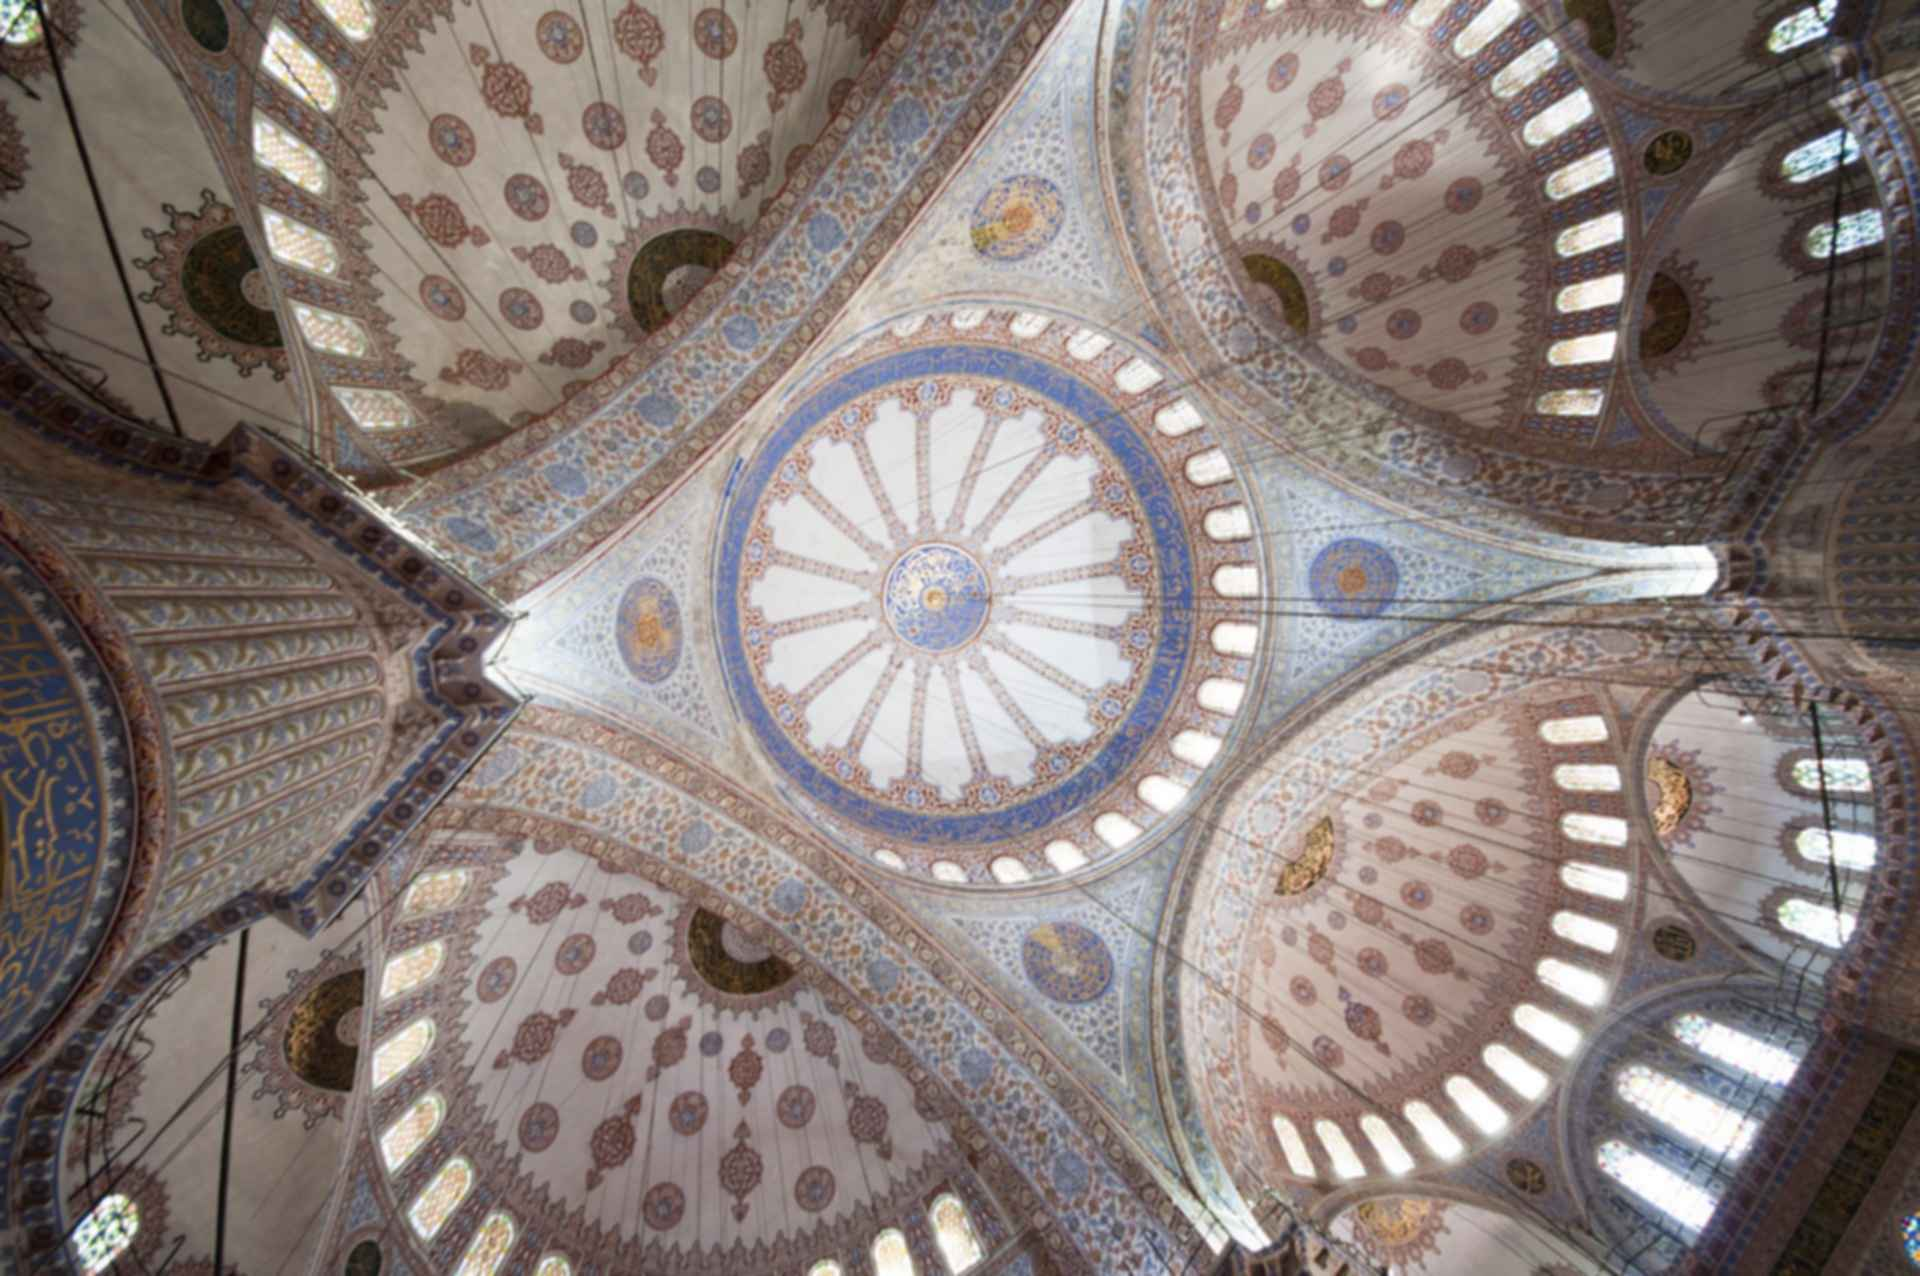 Sultan Ahmed Mosque - Ceiling